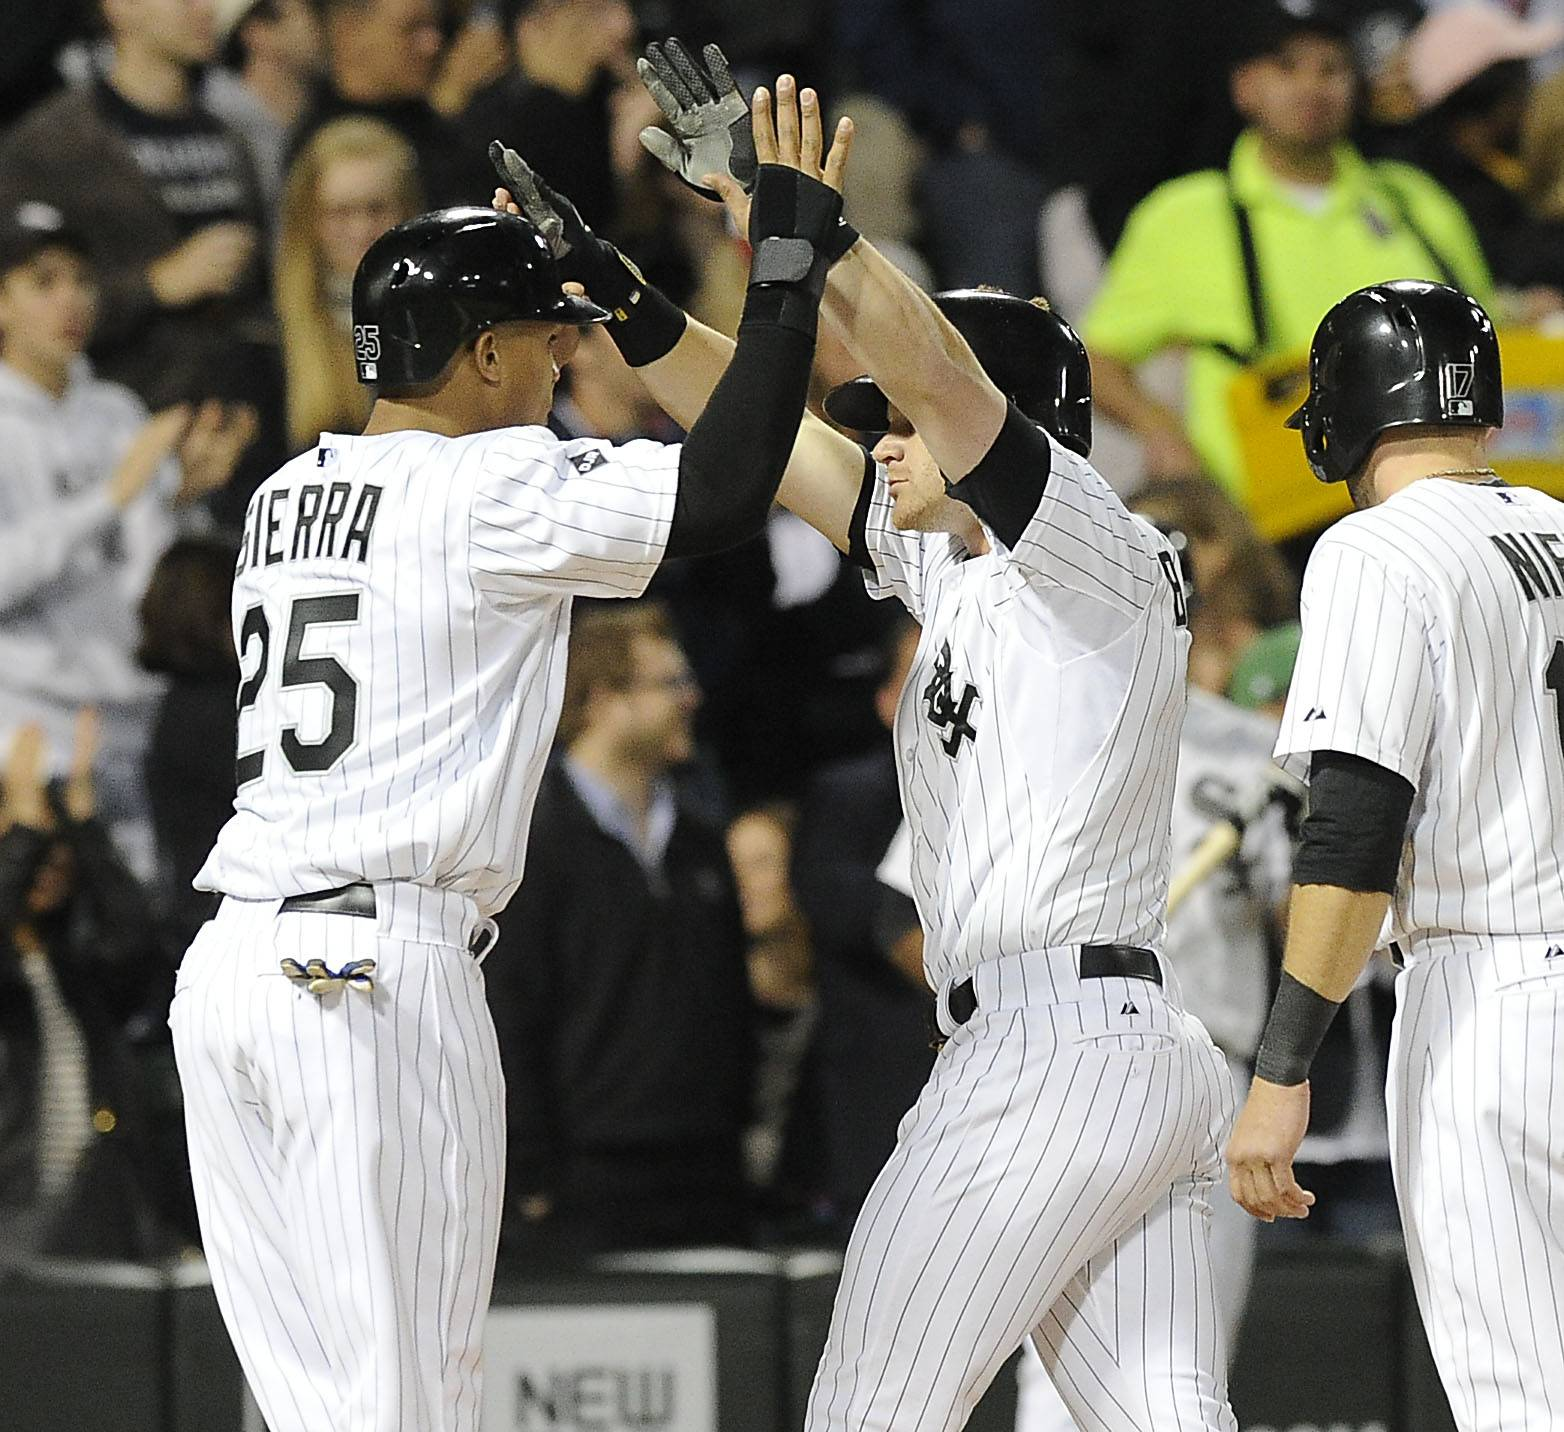 Mark Welsh/mwelsh@dailyherald.com Chicago White Sox's Gordon Beckham greets Moises Sierra at home plate after his three run homer in the fourth inning of the Crosstown Classic.